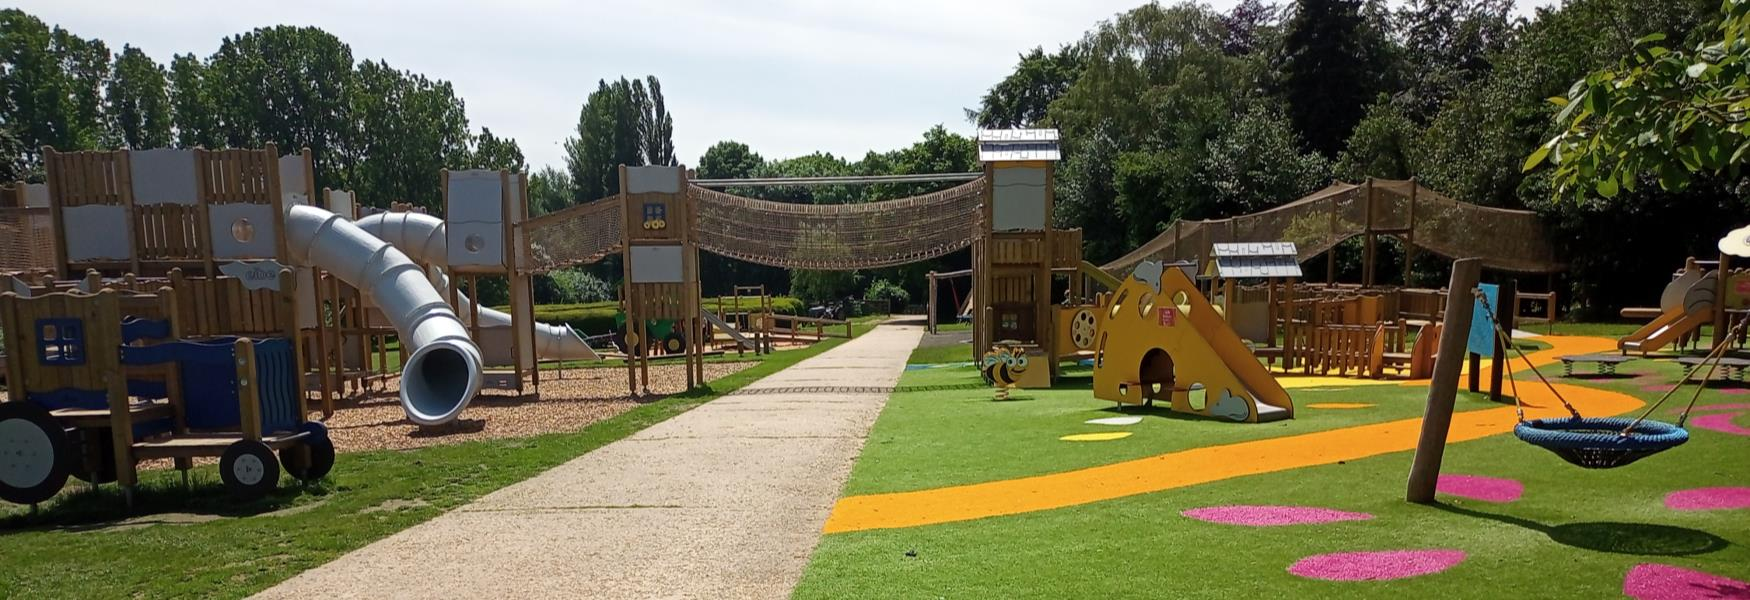 One of the play areas at Sacrewell